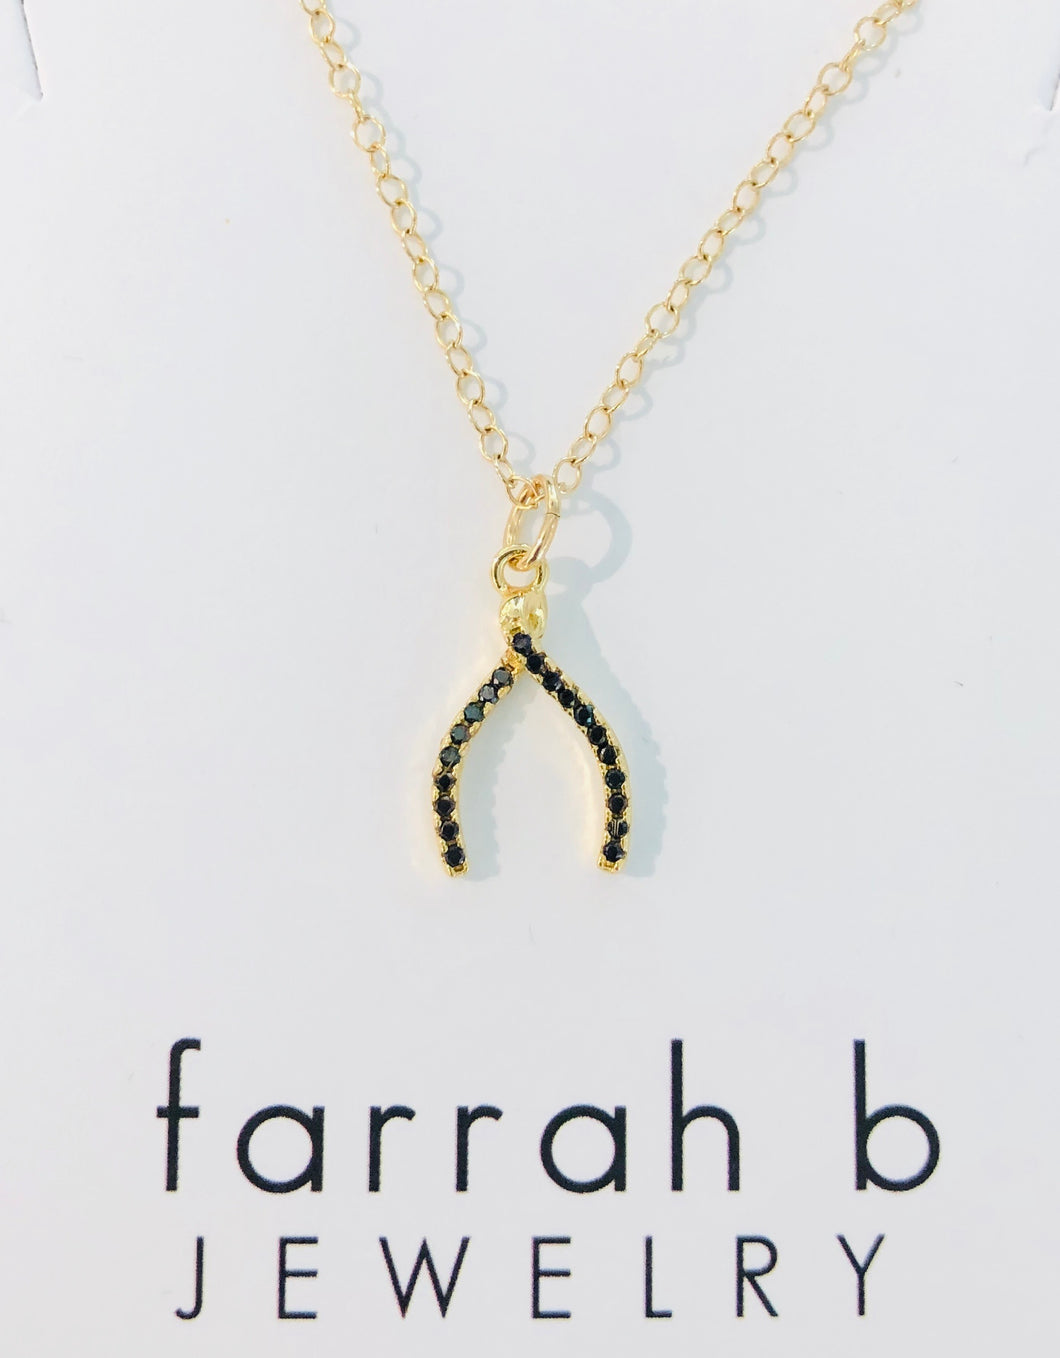 farrah b Gold Wishbone Charm with Black Crystals